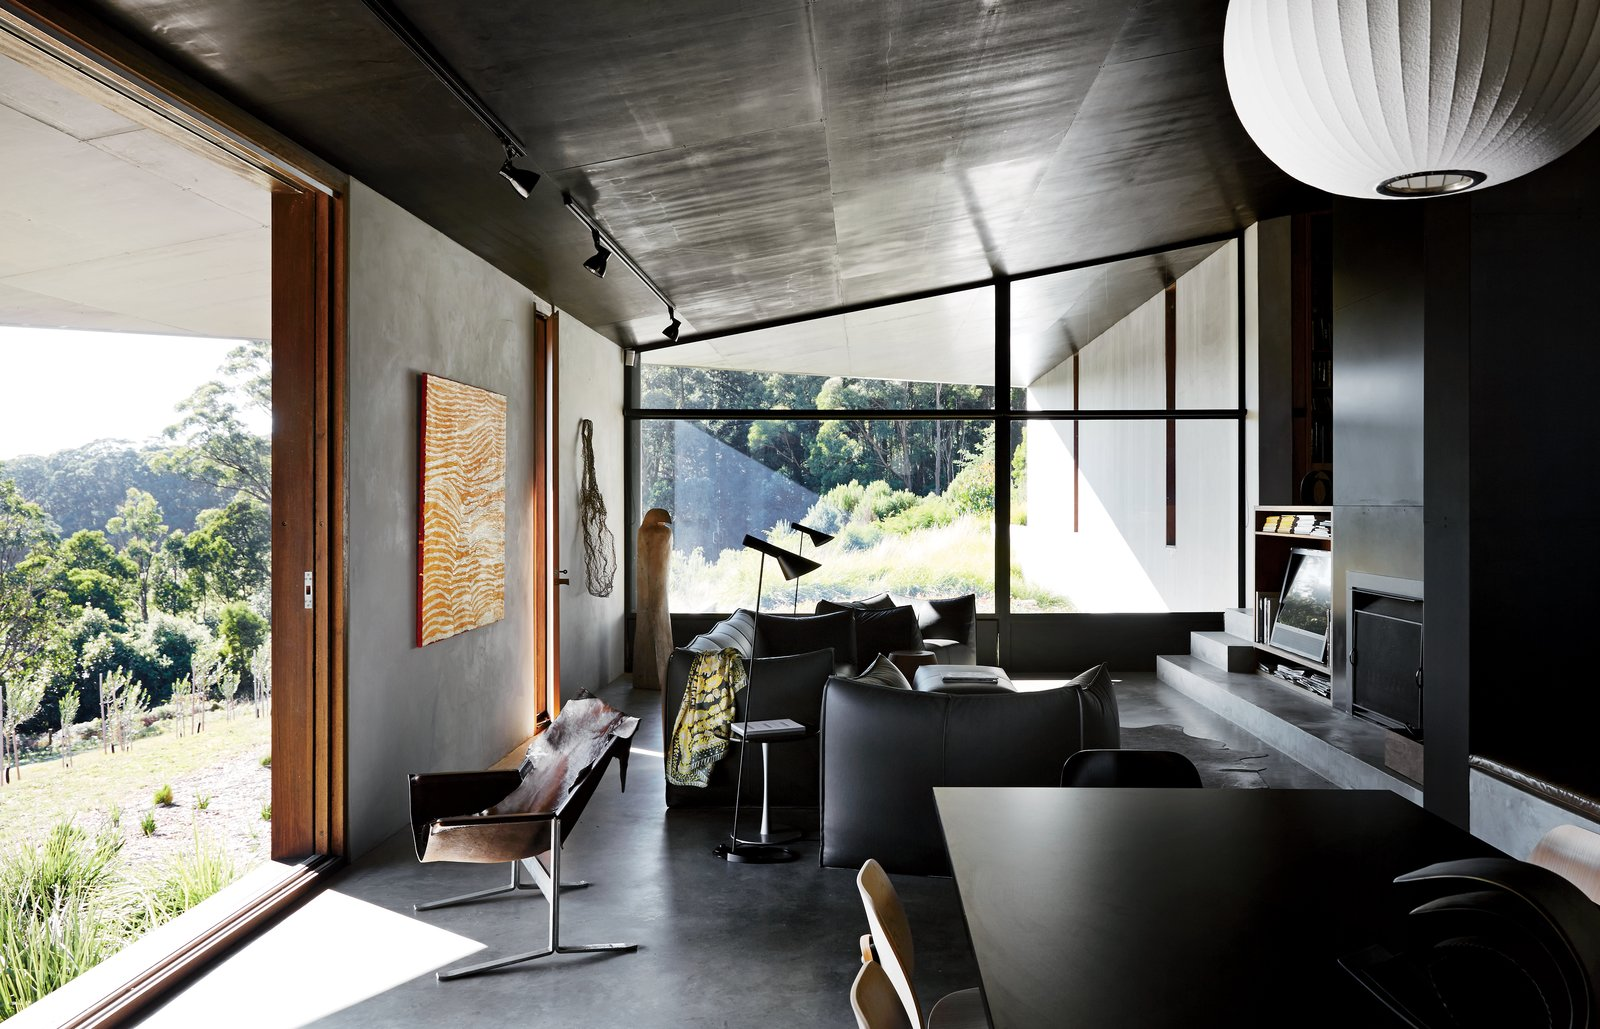 The interior shares the structure's attention to texture and line. Furnishings include a pair of Arne Jacobsen's AJ floor lamps and a Le Bambole sofa, armchairs, and ottoman by Mario Bellini for B&B Italia. Tagged: Living Room, Chair, Sofa, Lamps, Pendant Lighting, Floor Lighting, and Ceiling Lighting.  Photo 9 of 10 in Richly Furnished Home Frames Striking Landscape Views